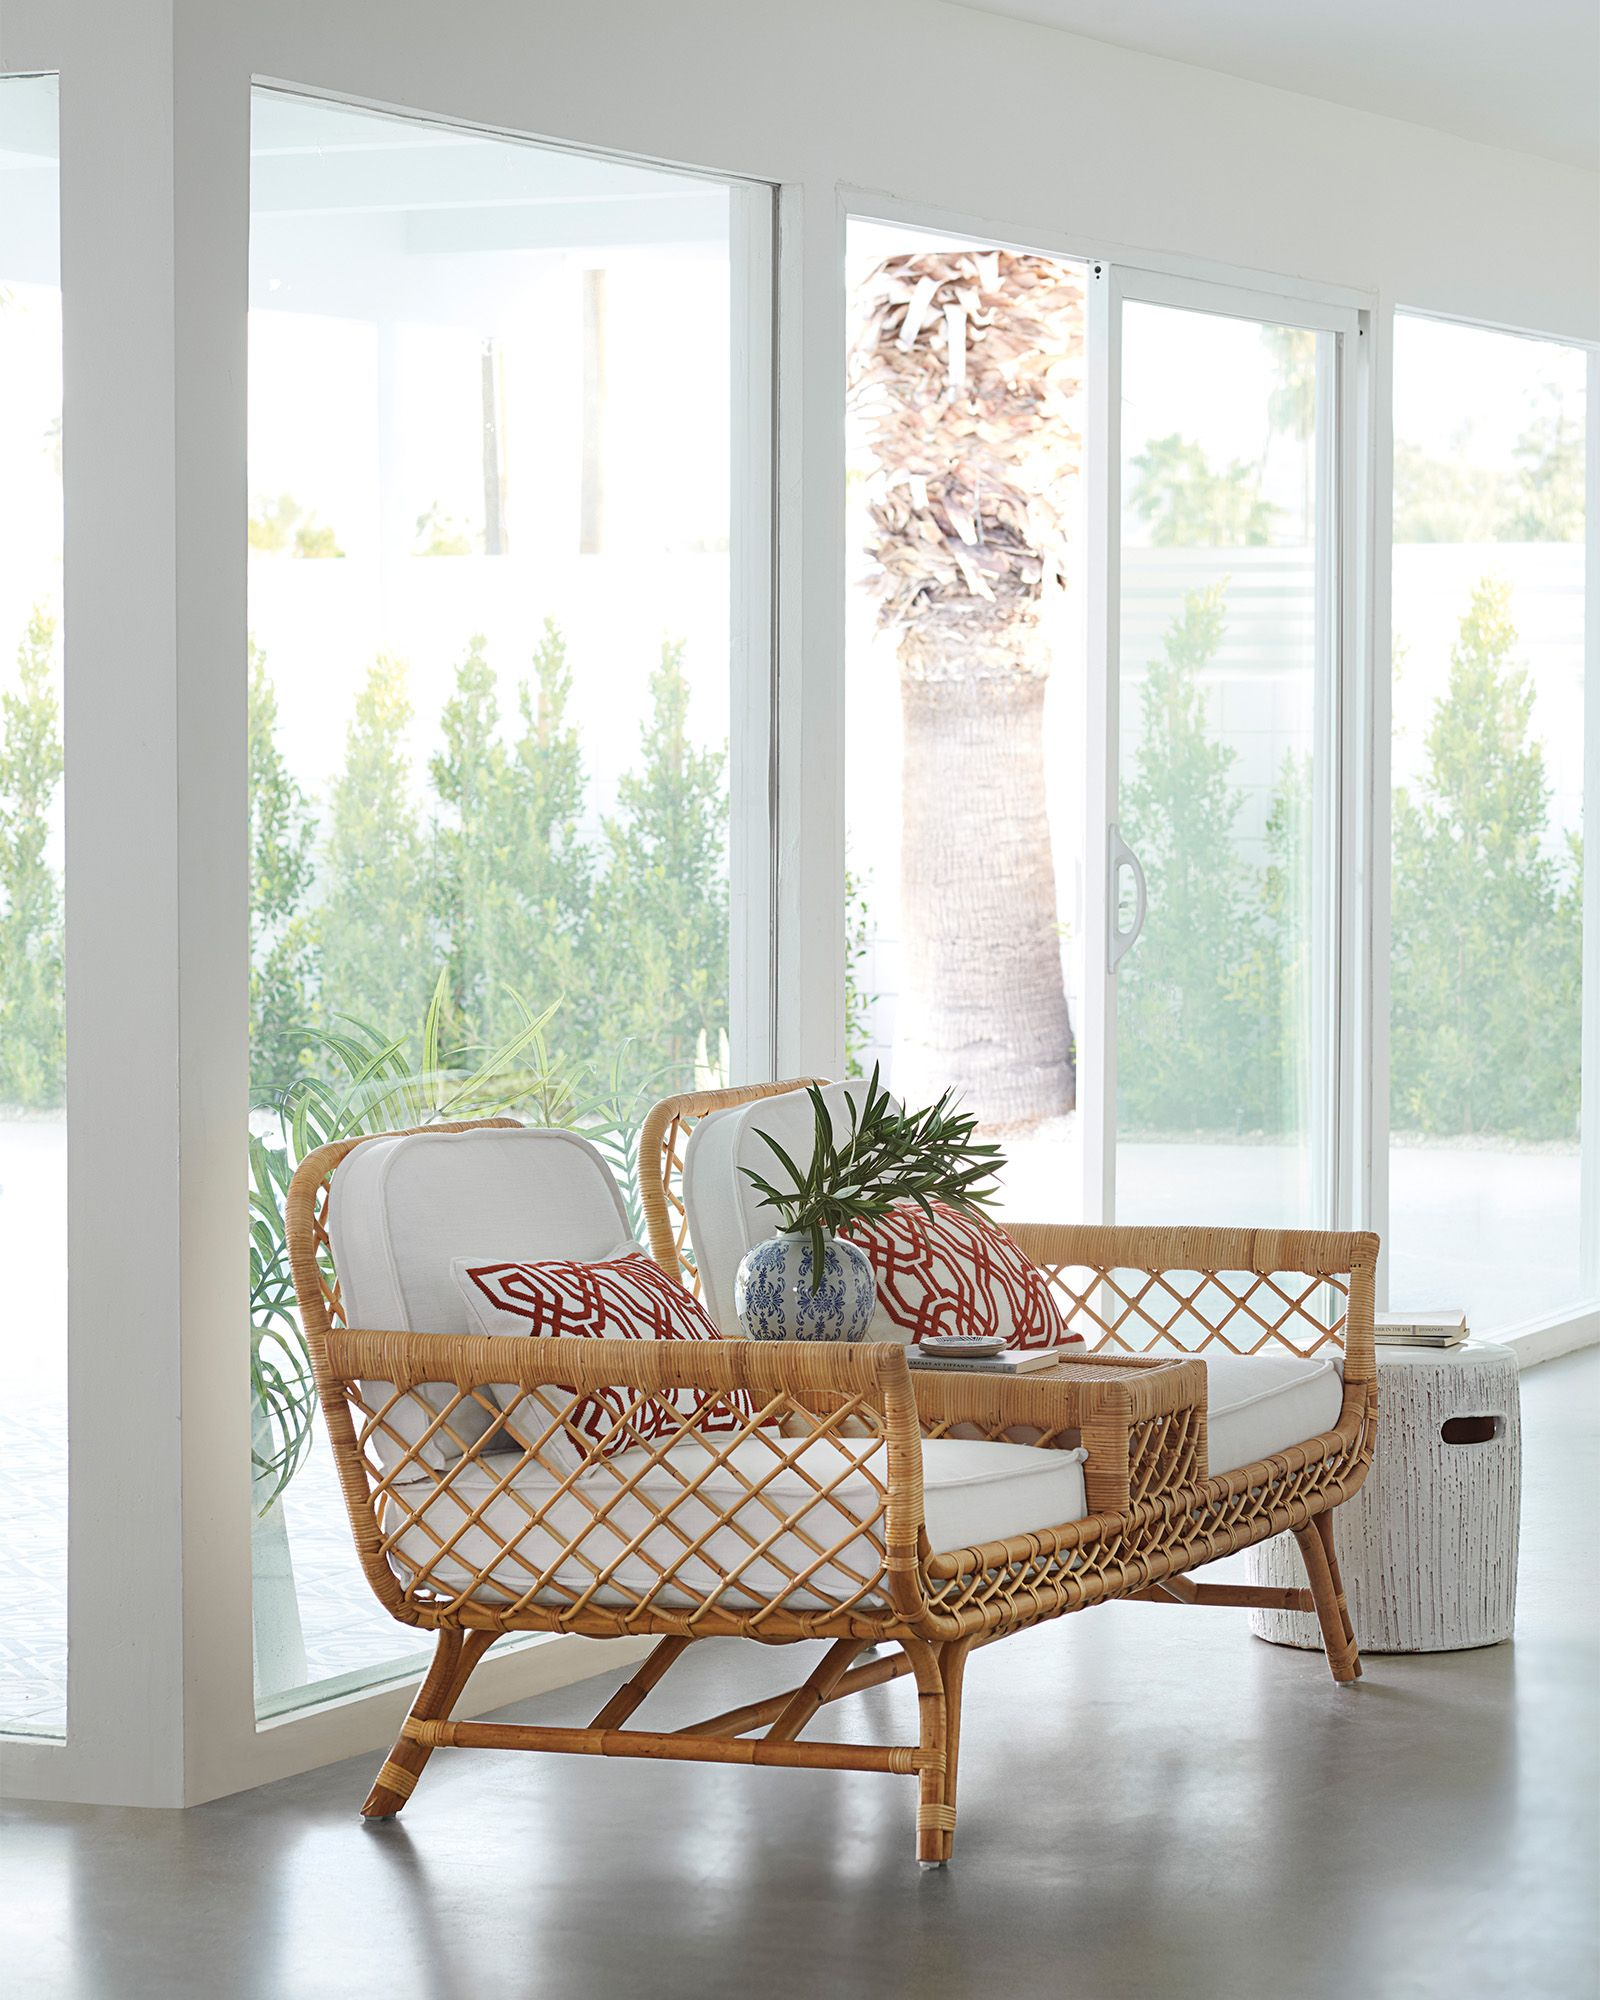 rattan combined chairs with small table between, white cushion